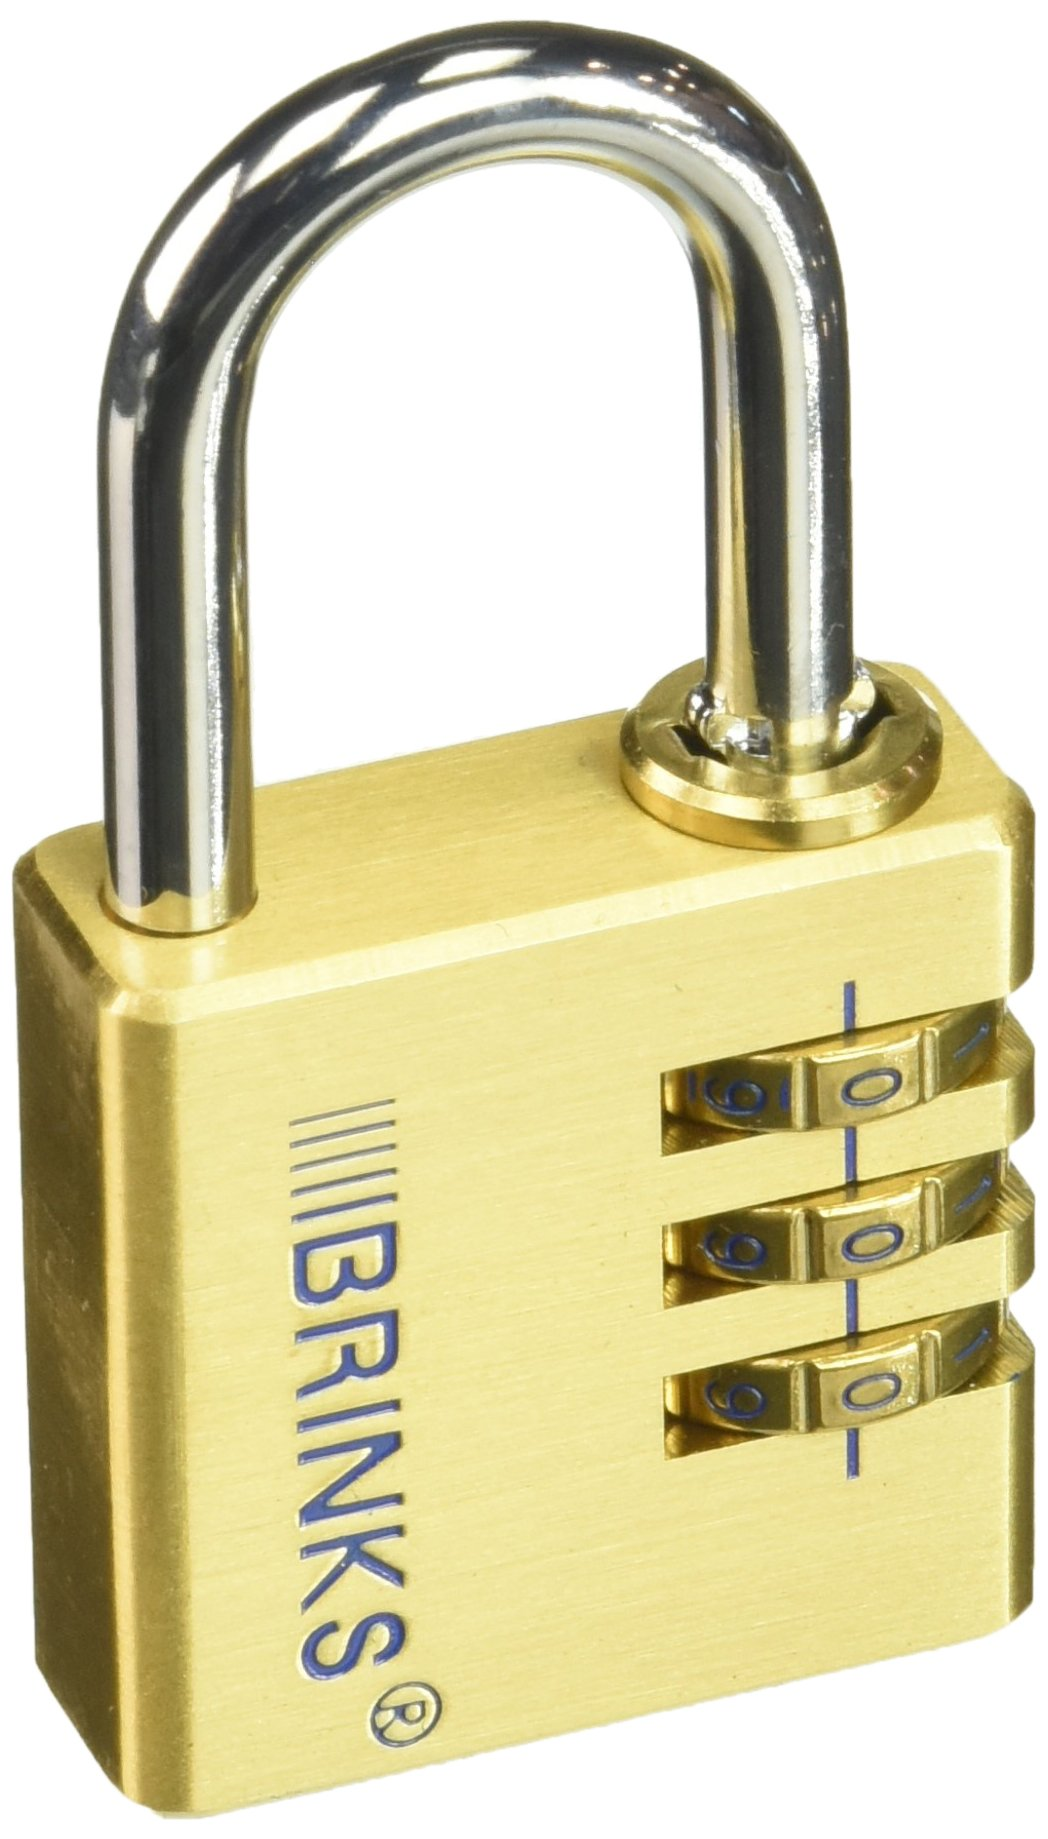 Keeper Brinks 171-40051 40mm Solid Brass 3-Dial Resettable Lock